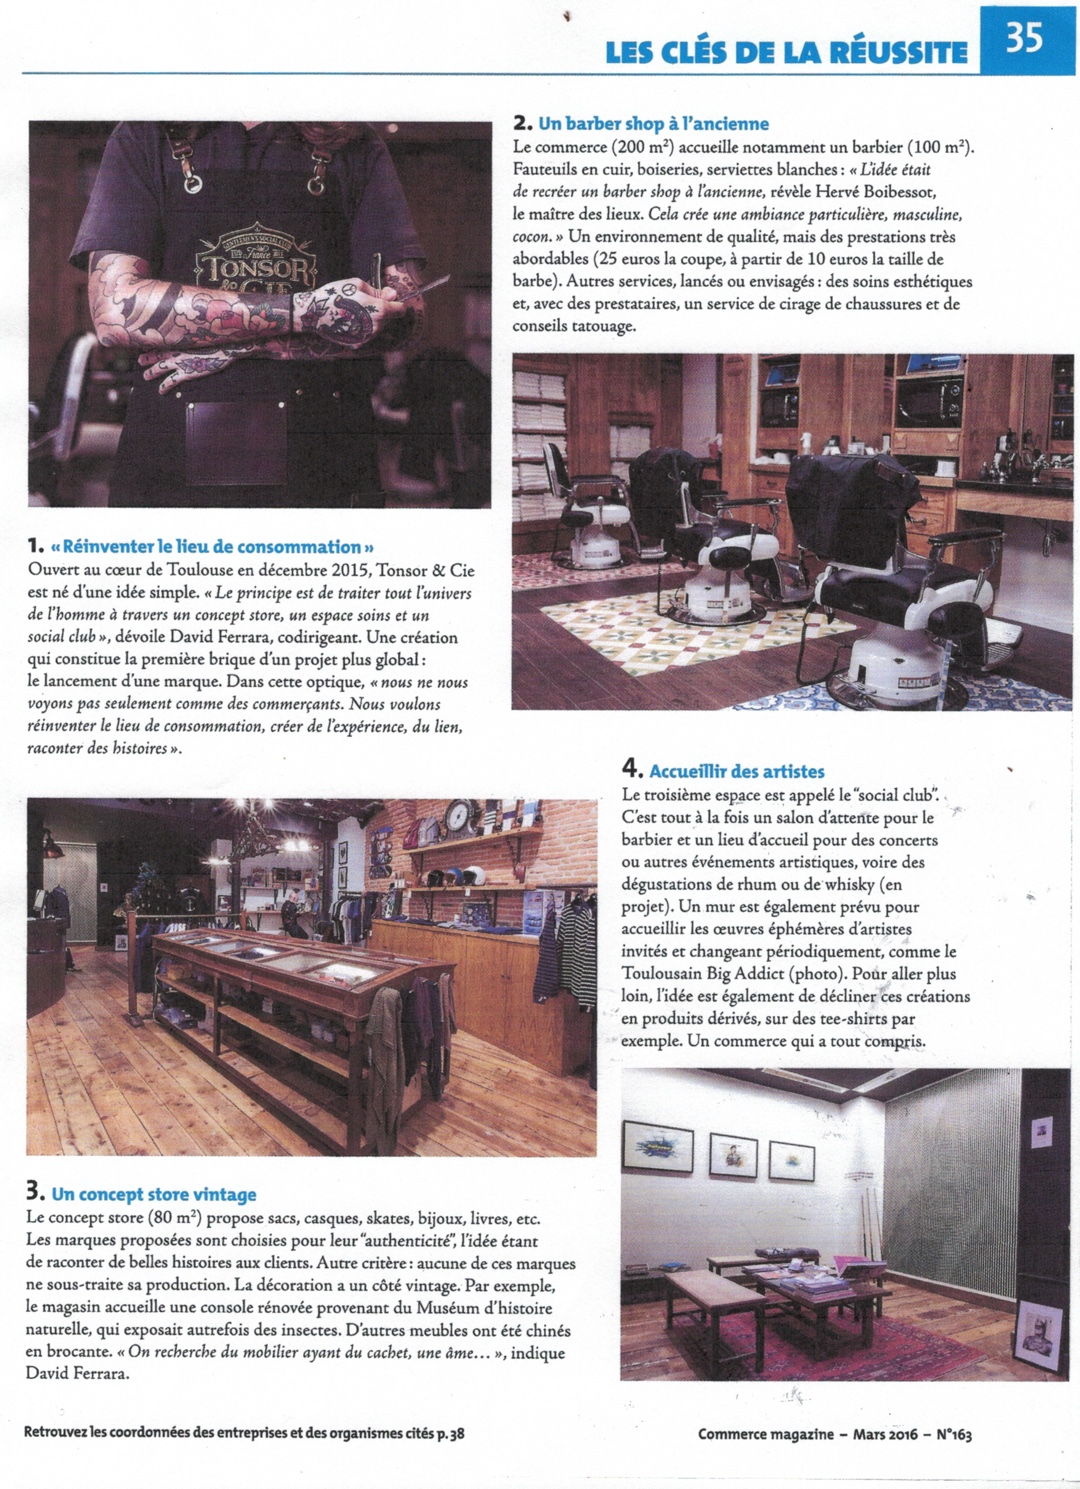 article commerce mag 1